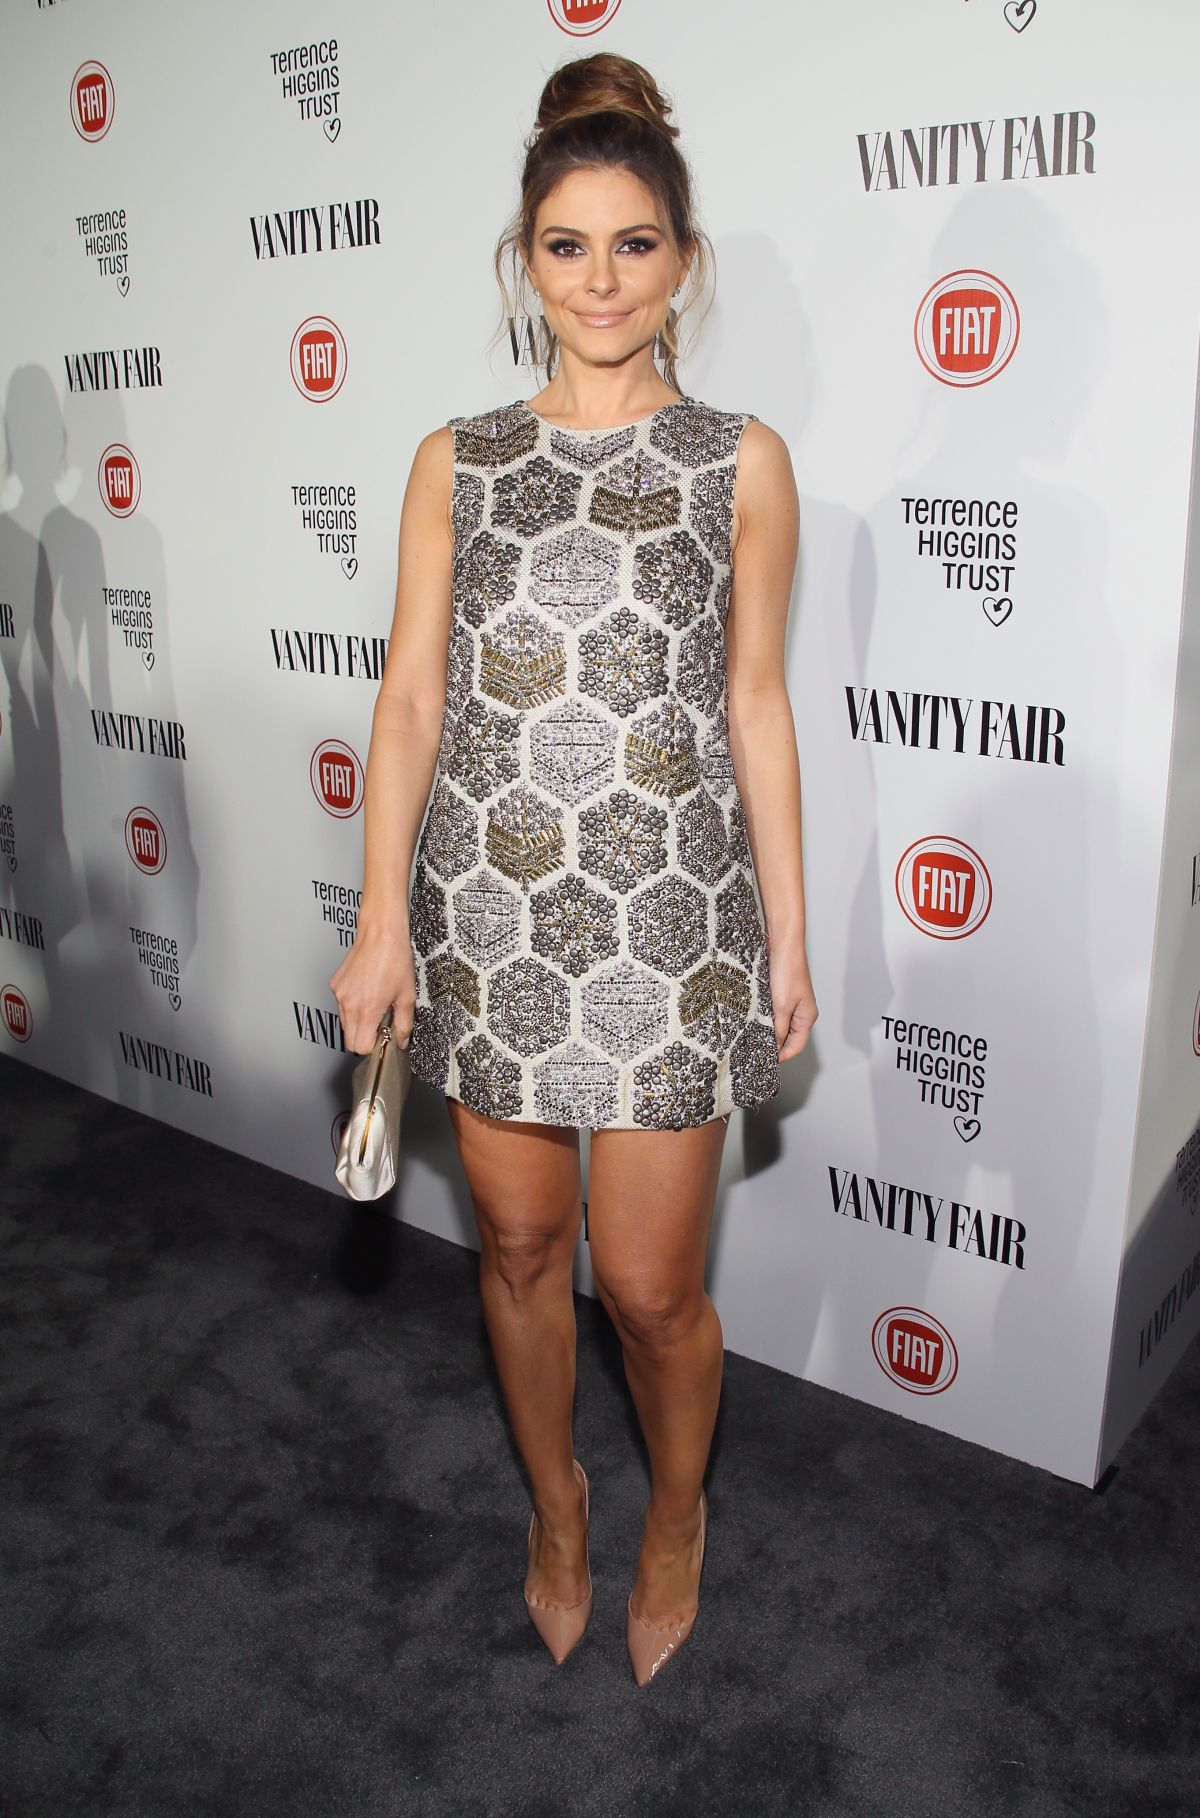 MARIA MENOUNOS at Vanity Fair and Fiat Celebration of Young Hollywood in Los Angeles